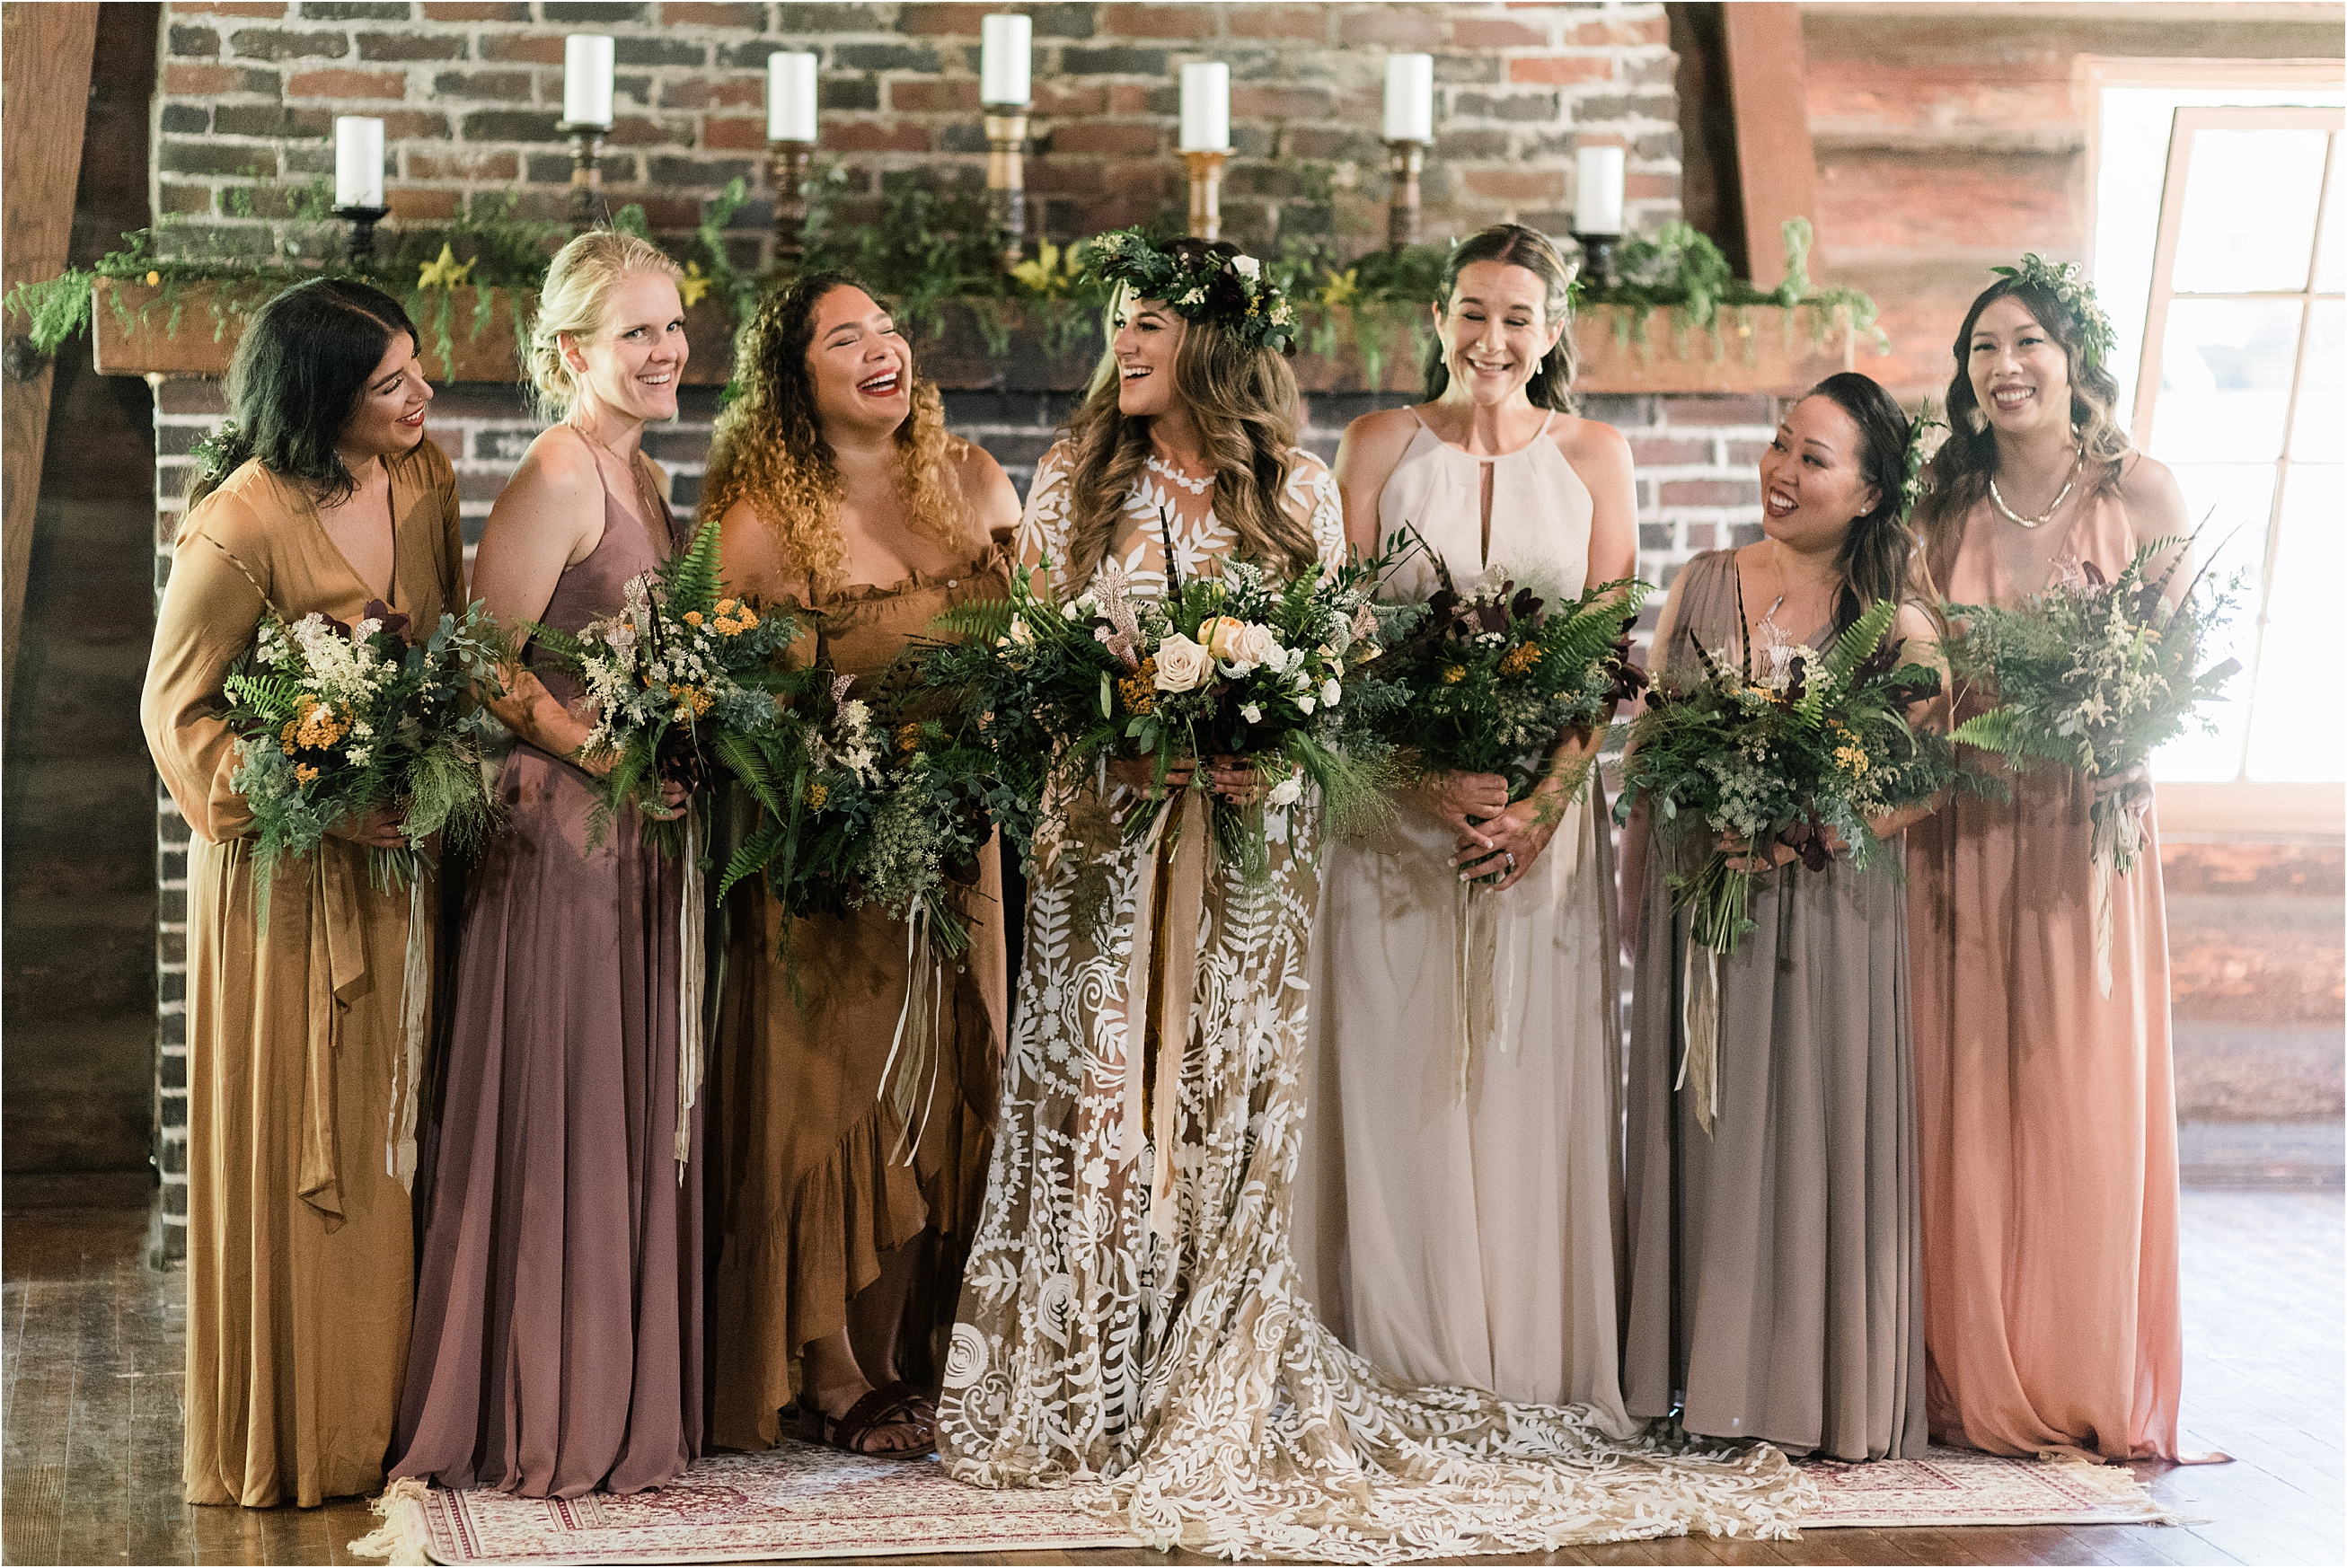 Bridesmaids at Cassy & Viva's bohemian Oregon destination wedding at Camp Lane. Image by Forthright Photo.